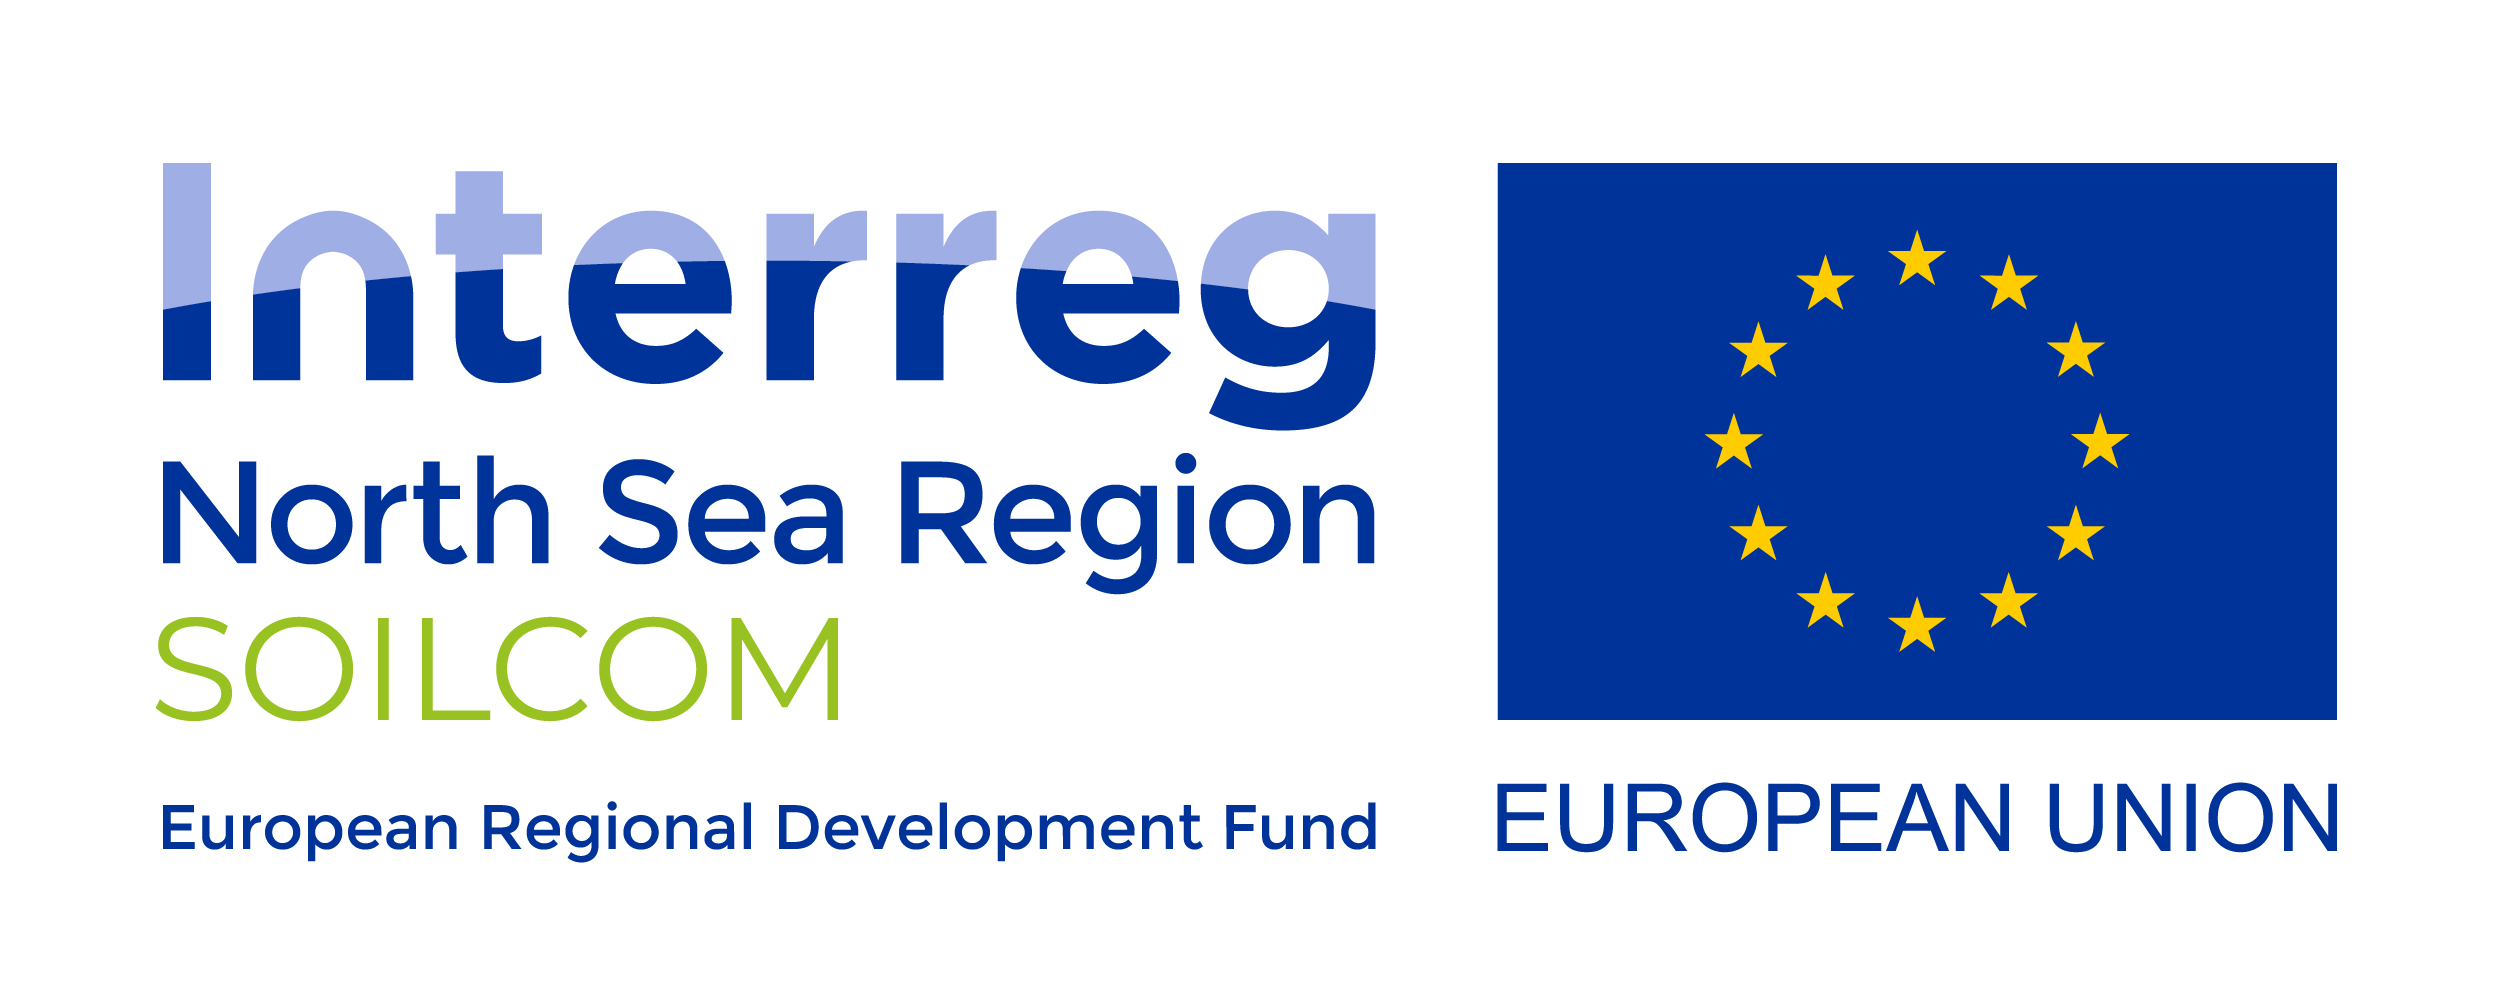 Interreg north sea reagon Soilcom